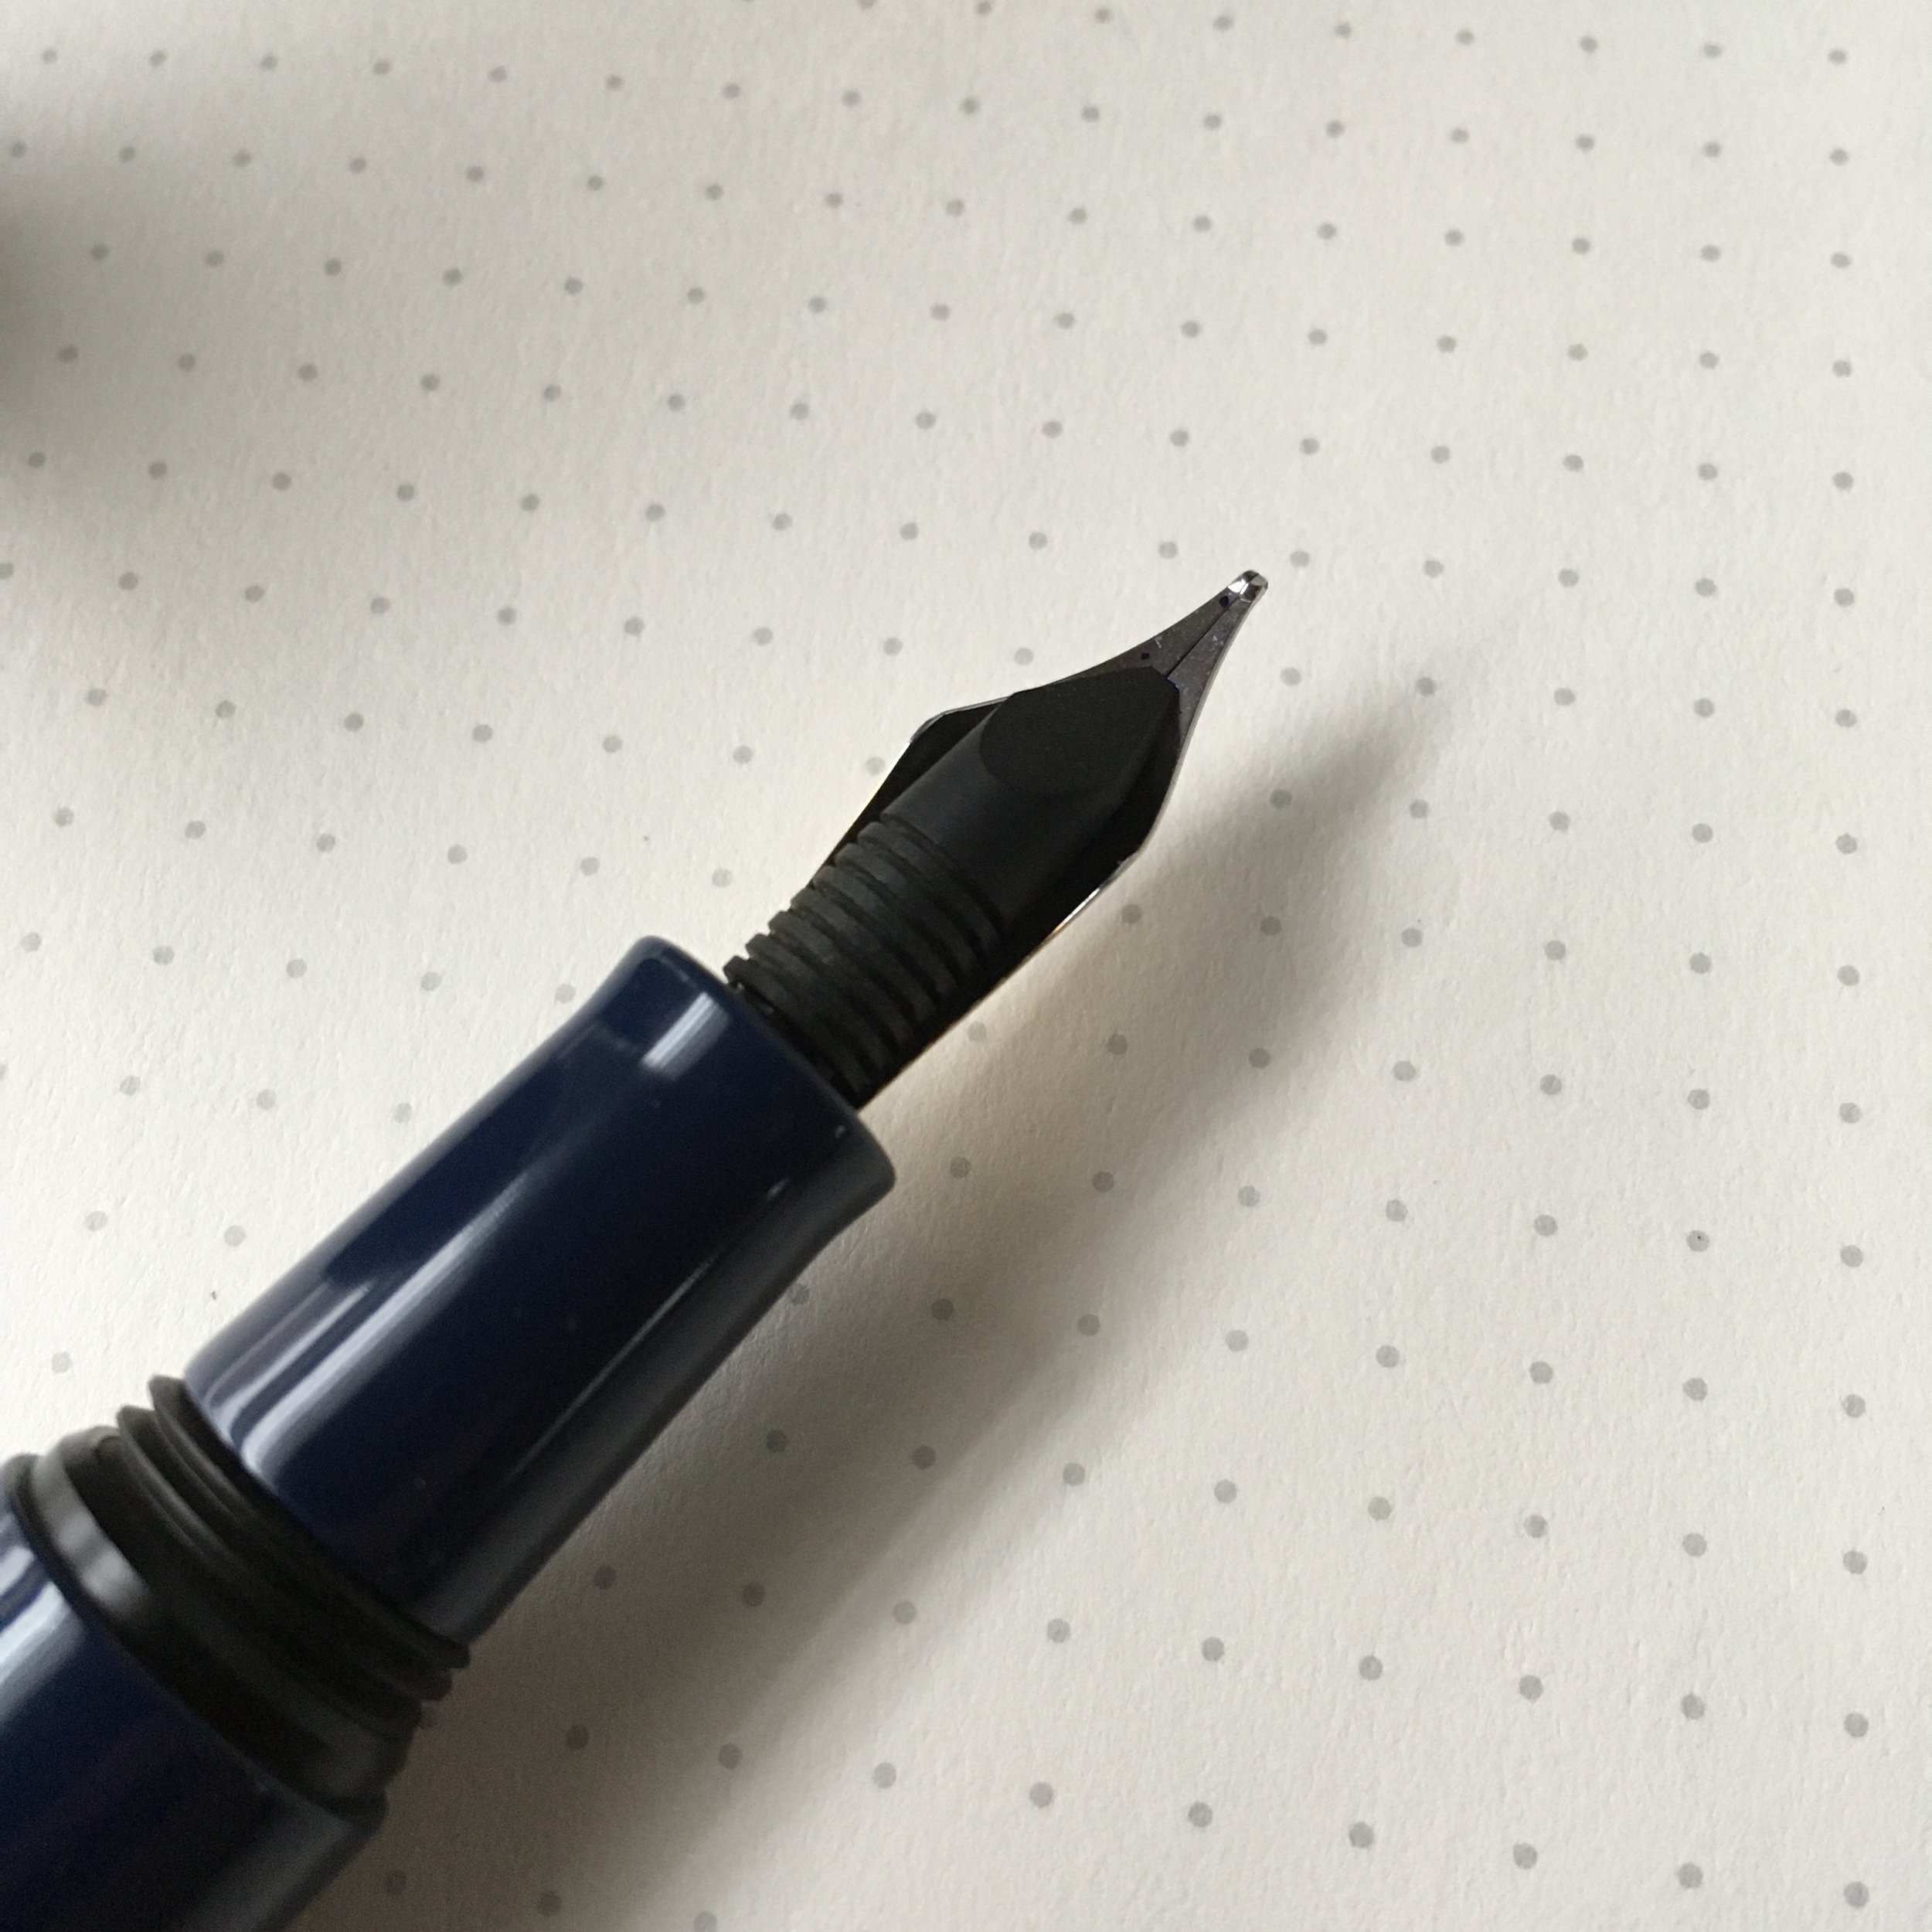 The Dream Pen features an ebonite feed, which are increasingly uncommon on modern pens.